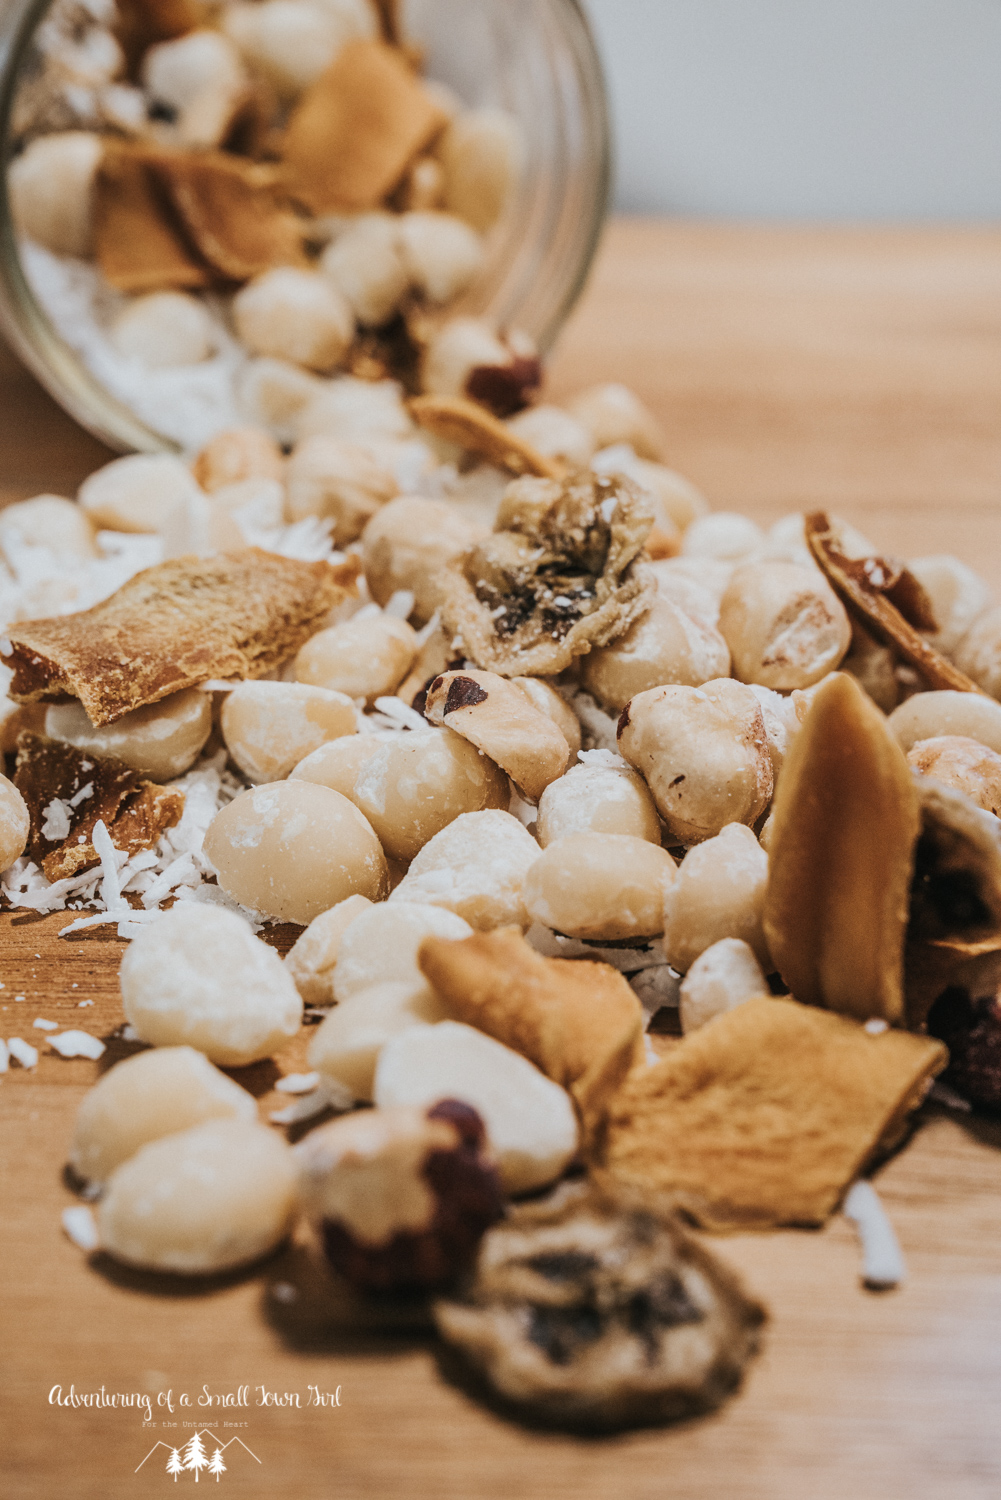 Homemade Trail Mix Recipe by Adventuring of a Small Town Girl (ASTG) - No Bake Raw Vegan Trail Mix - Tripical Trail Mix - Make your own trail mix